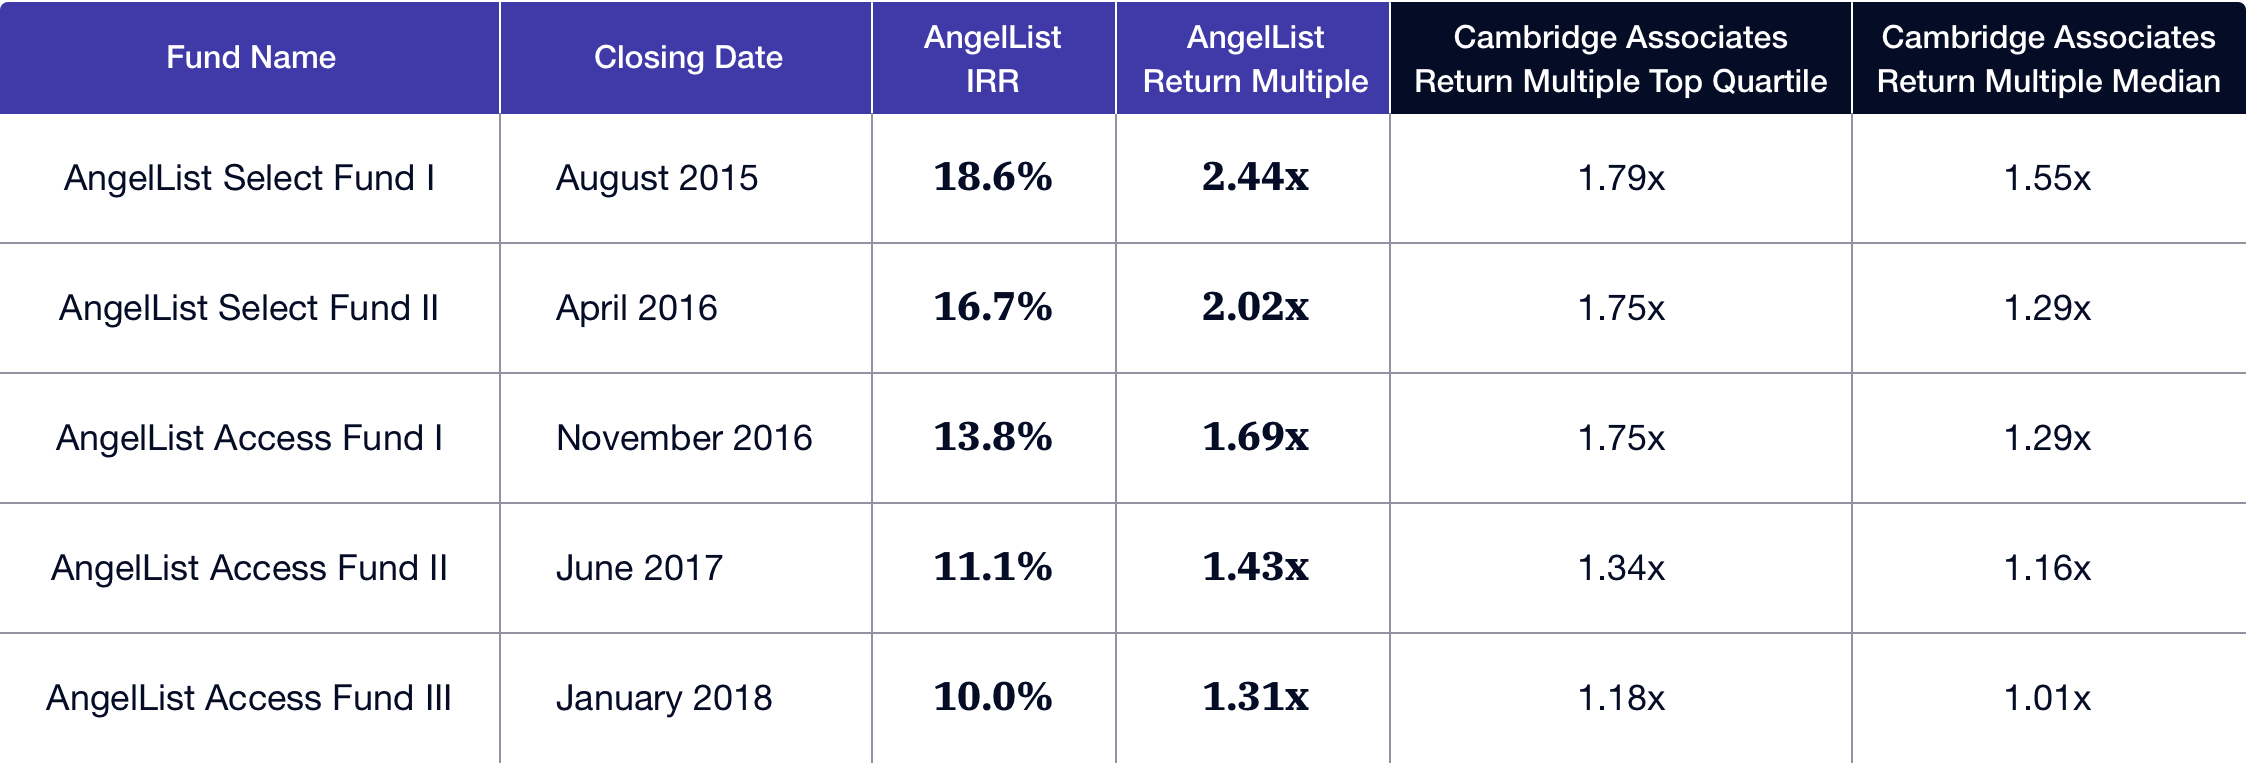 Table that shows the past 5 funds AngelList Venture has managed with corresponding columns for IRR and TVPI. Table shows top-quartile TVPI based on data from Cambridge Associates